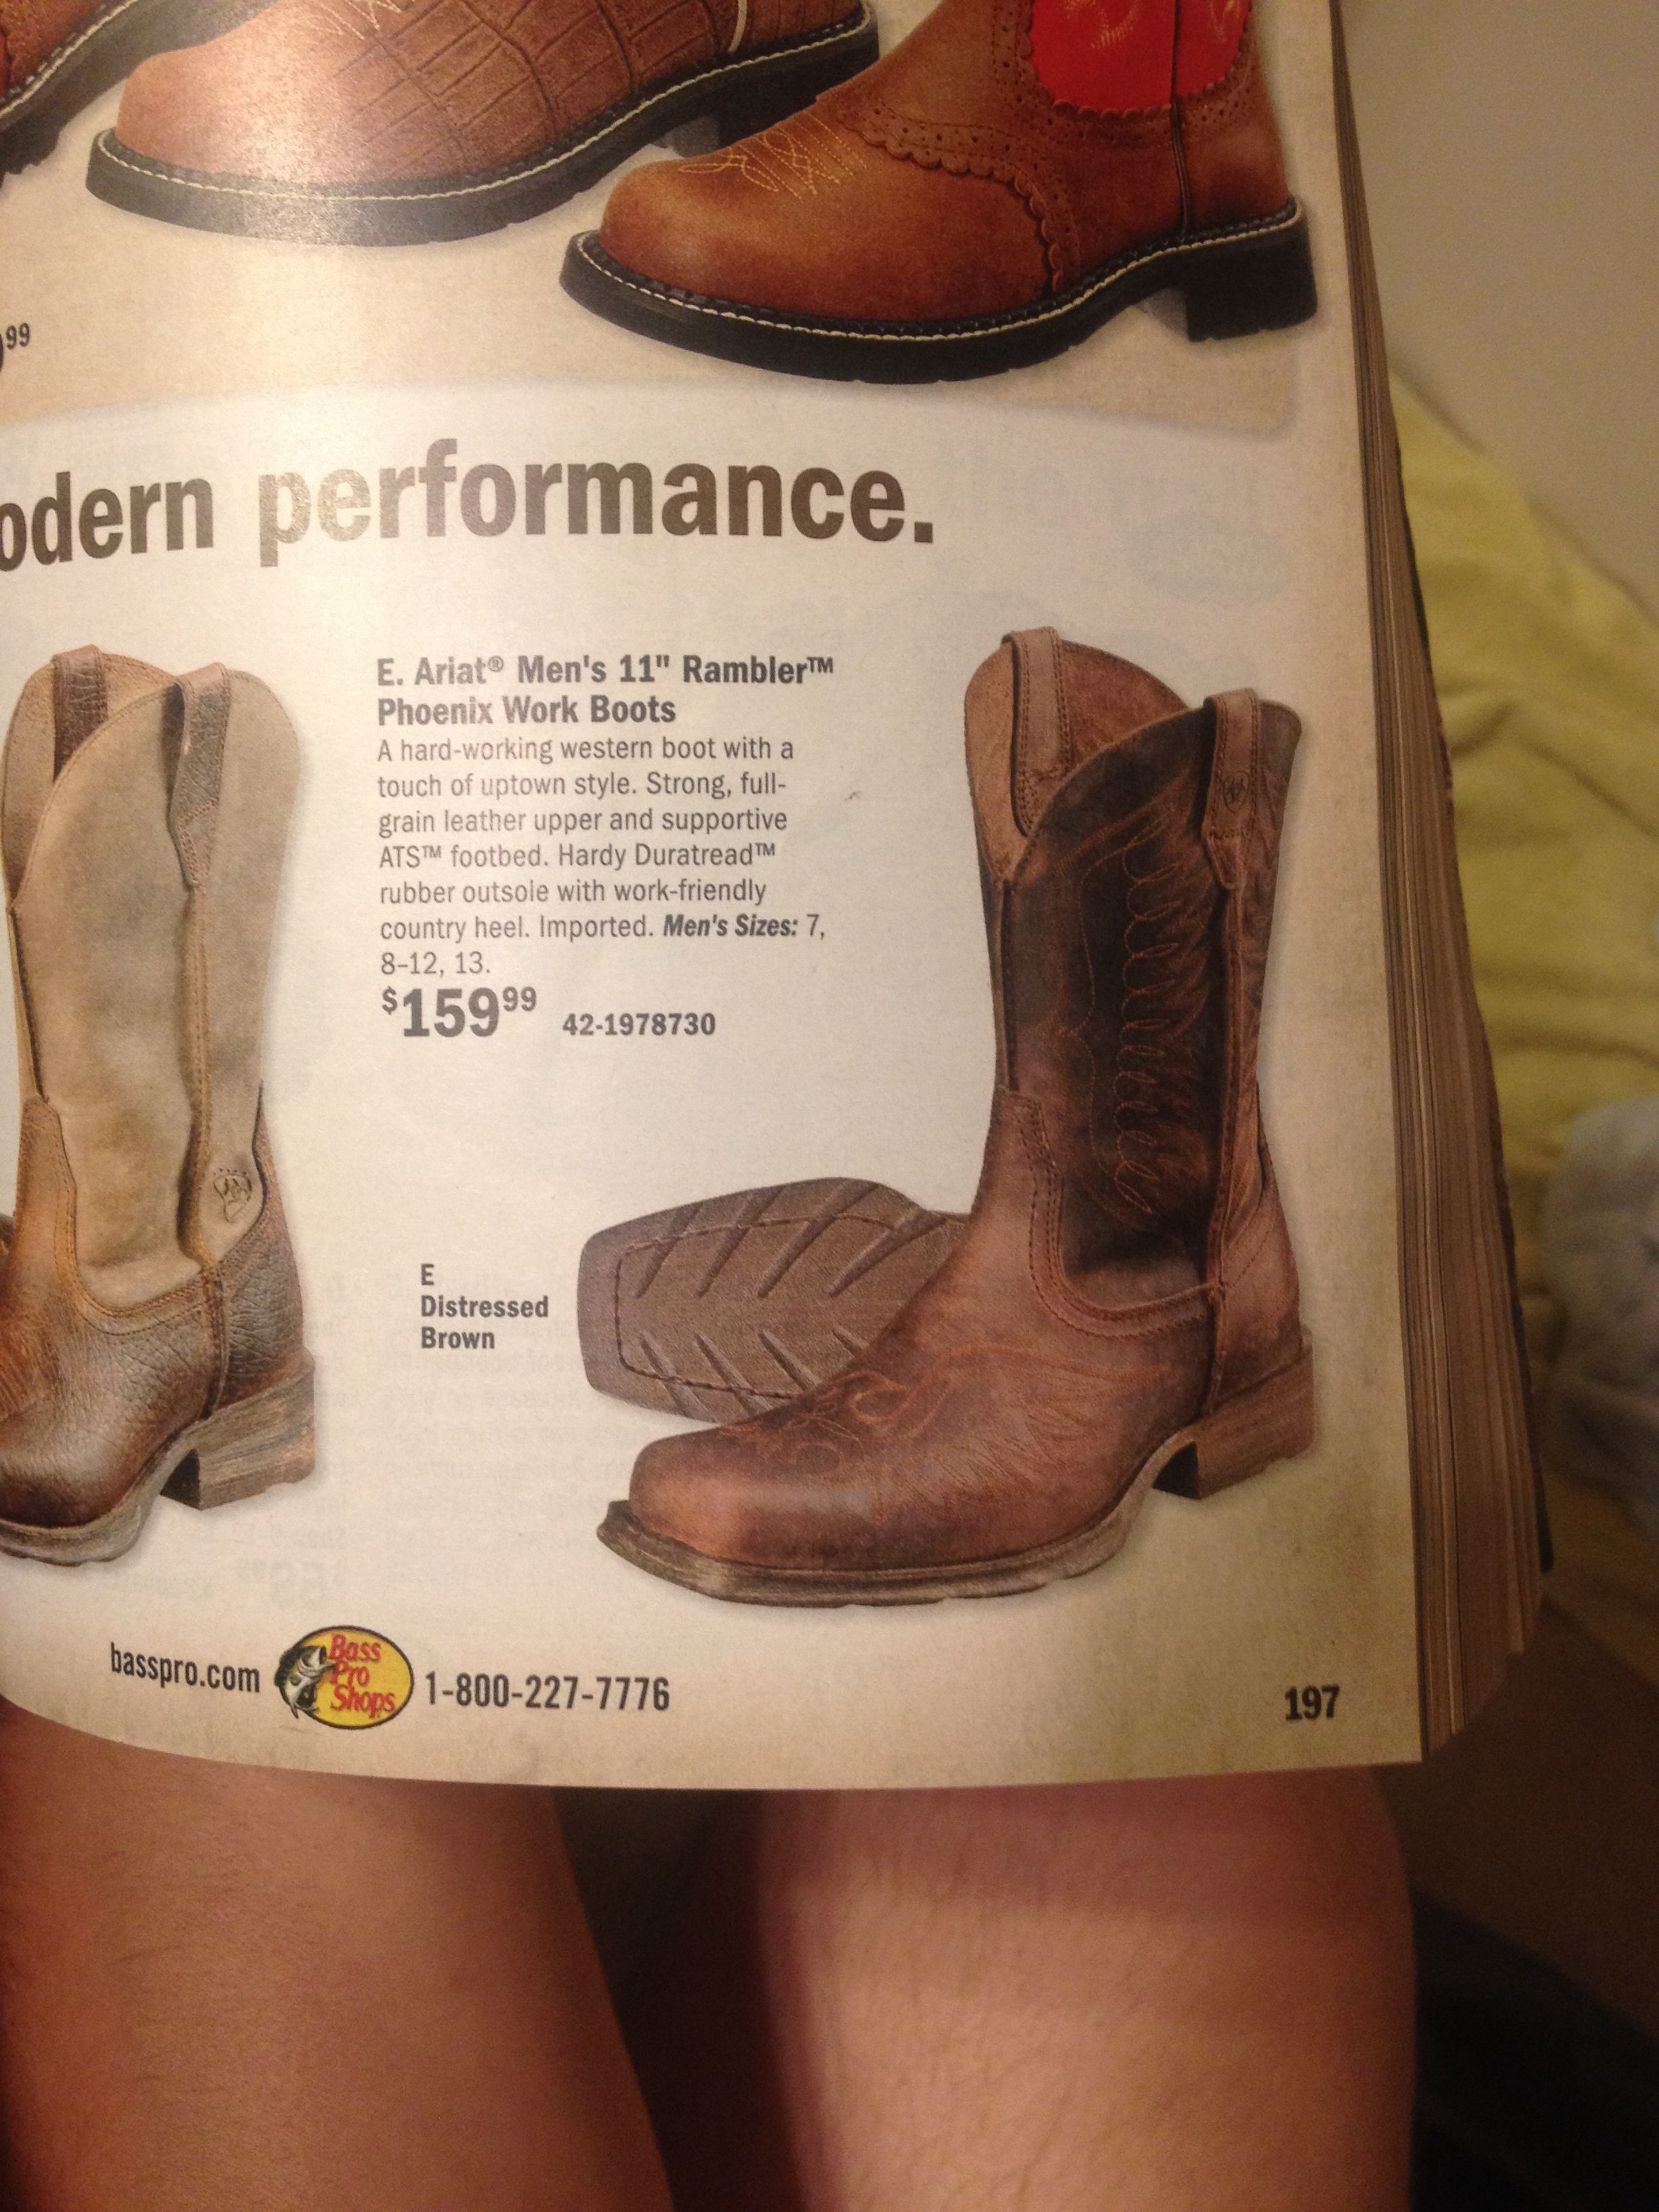 These boots I want so bad